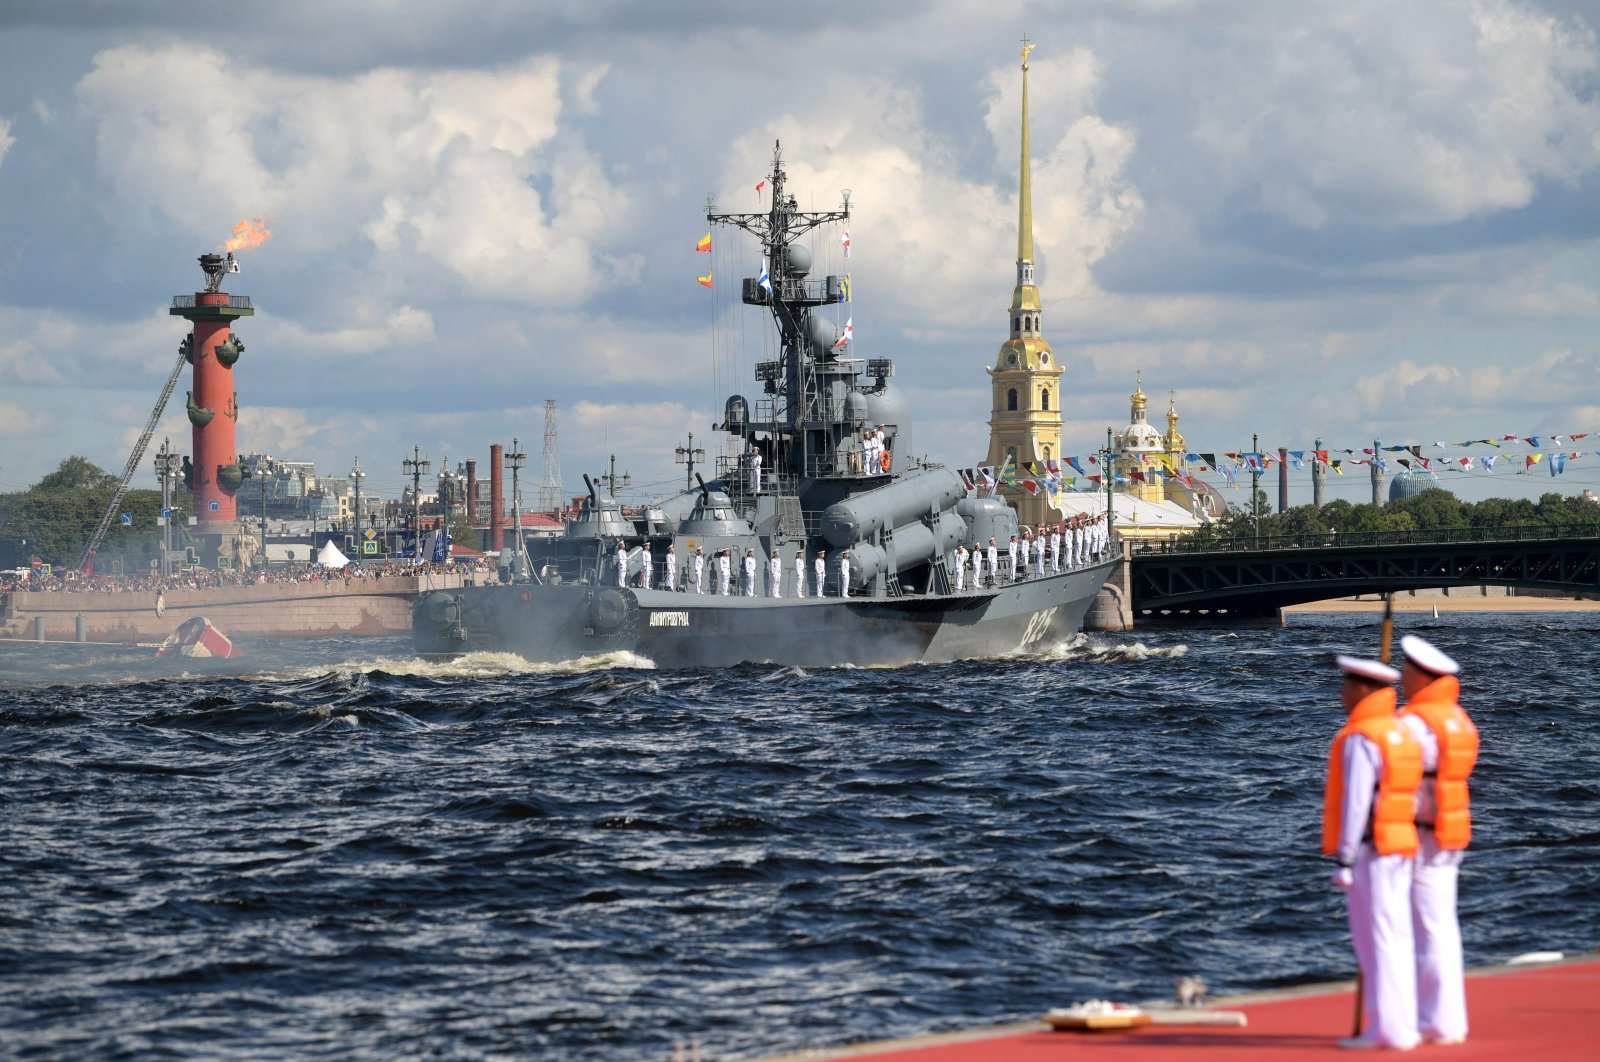 Russian missile corvette Dmitrovgrad sails on the Neva river during the Navy Day parade in St. Petersburg on July 26, 2020. (AFP Photo)